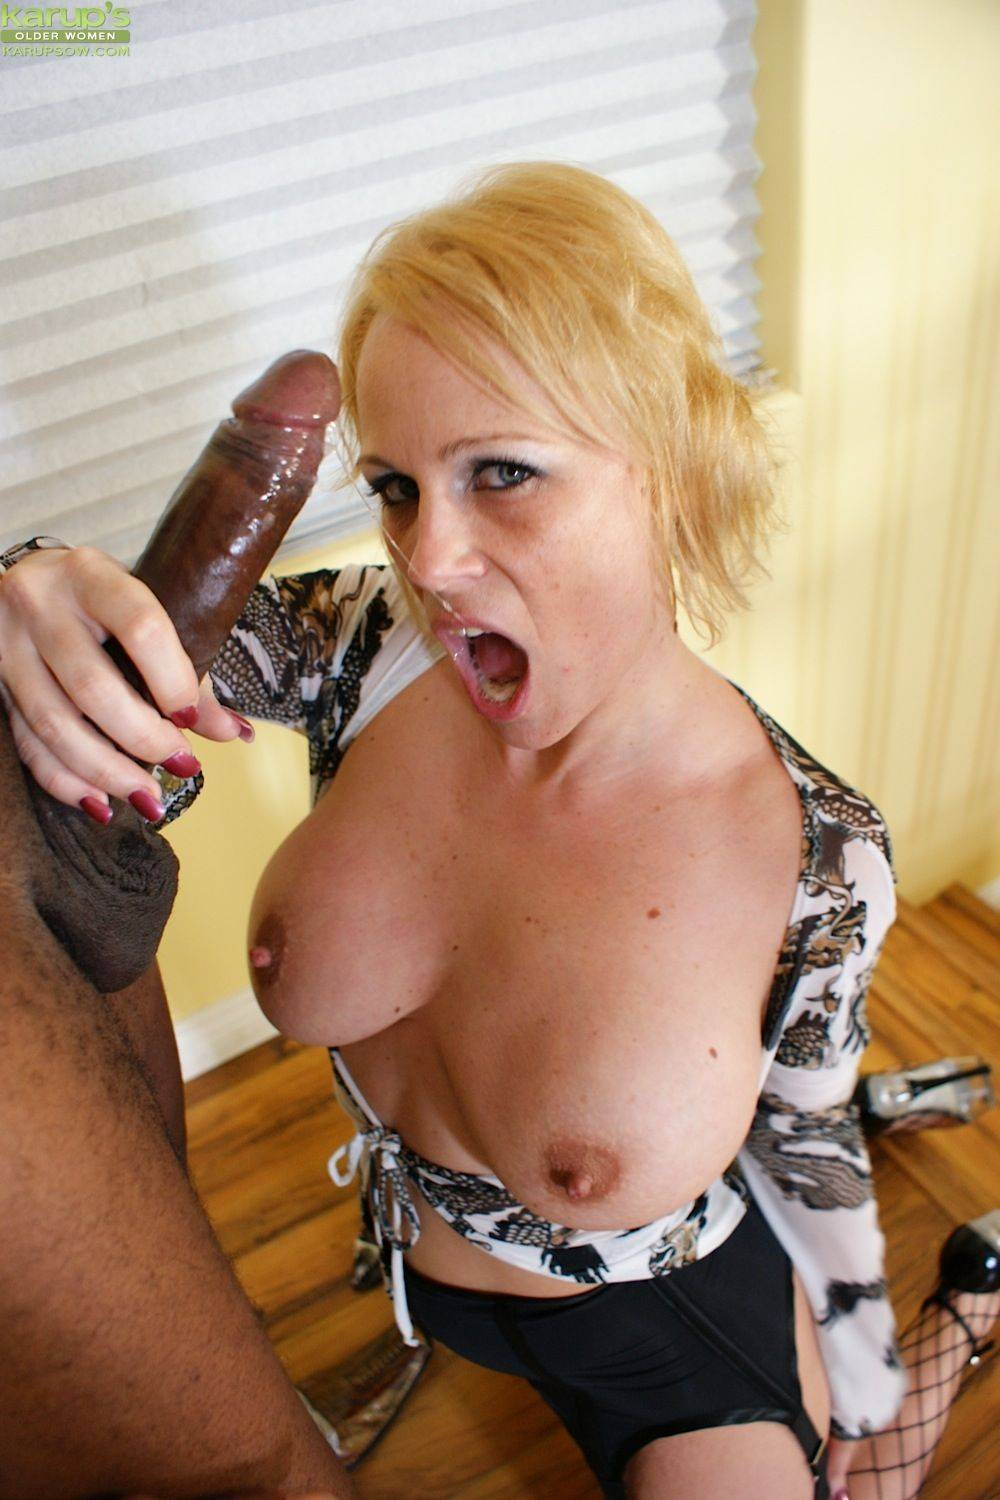 Busty cougar Sunny Day takes that big black cock hard at Karupsow